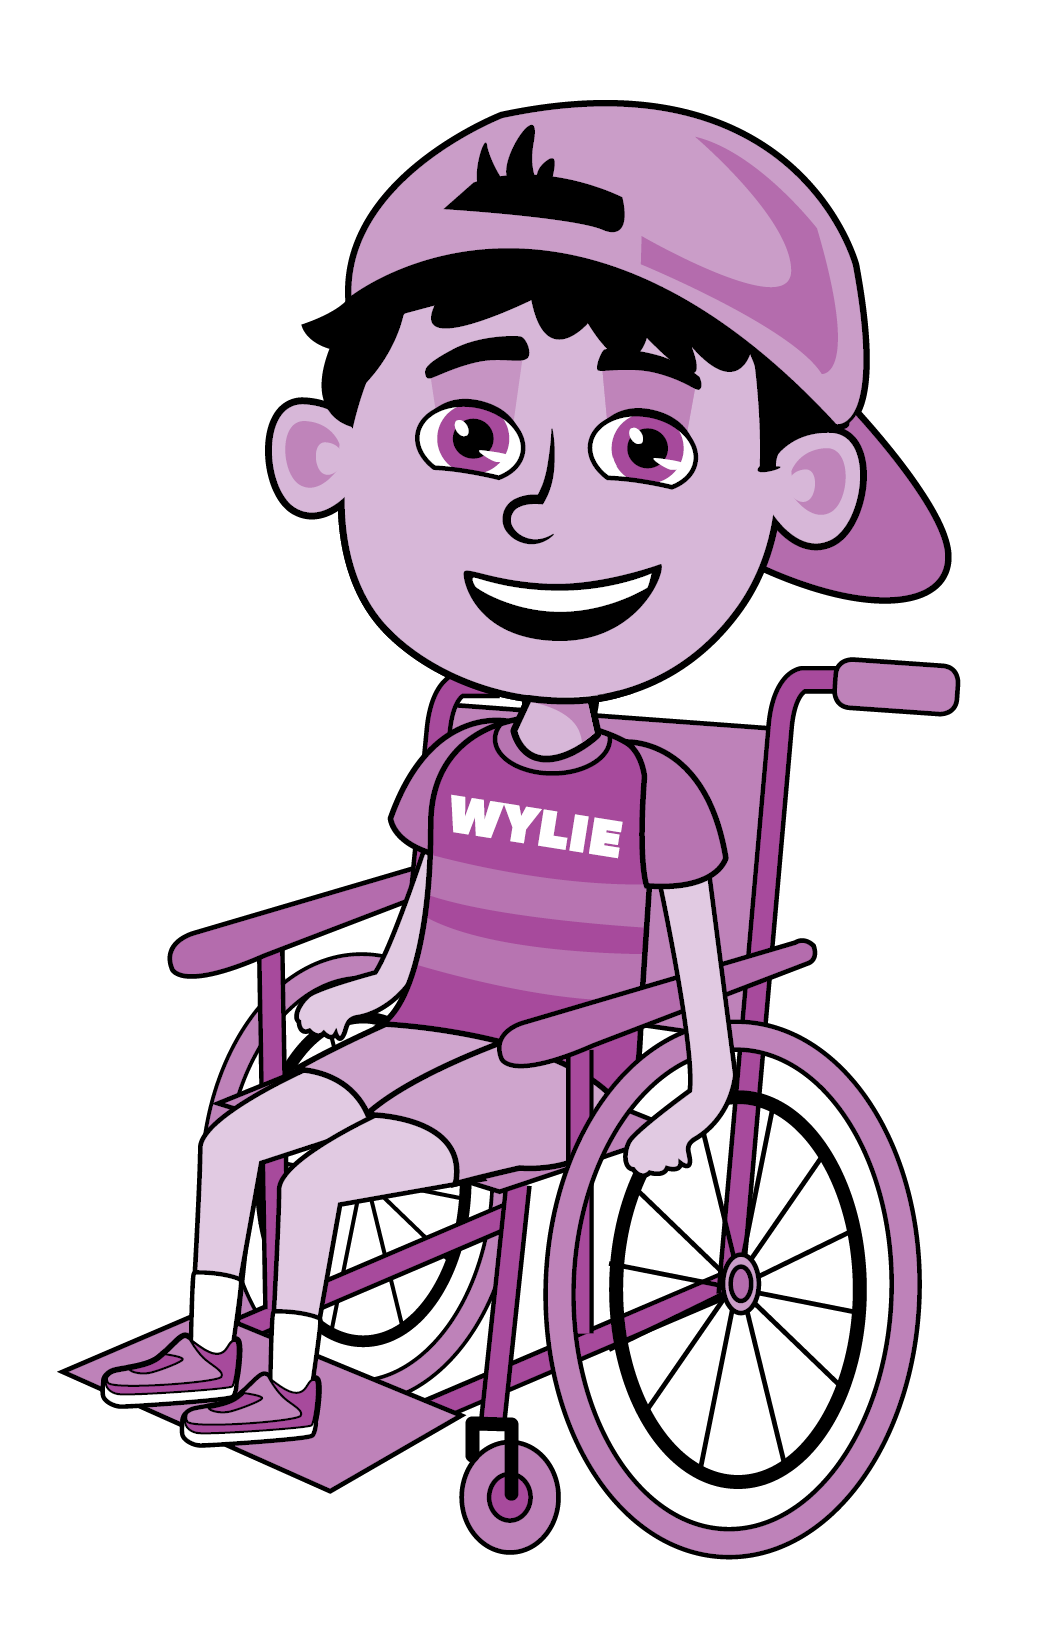 Wylie_Summer_Wheelchair_Left